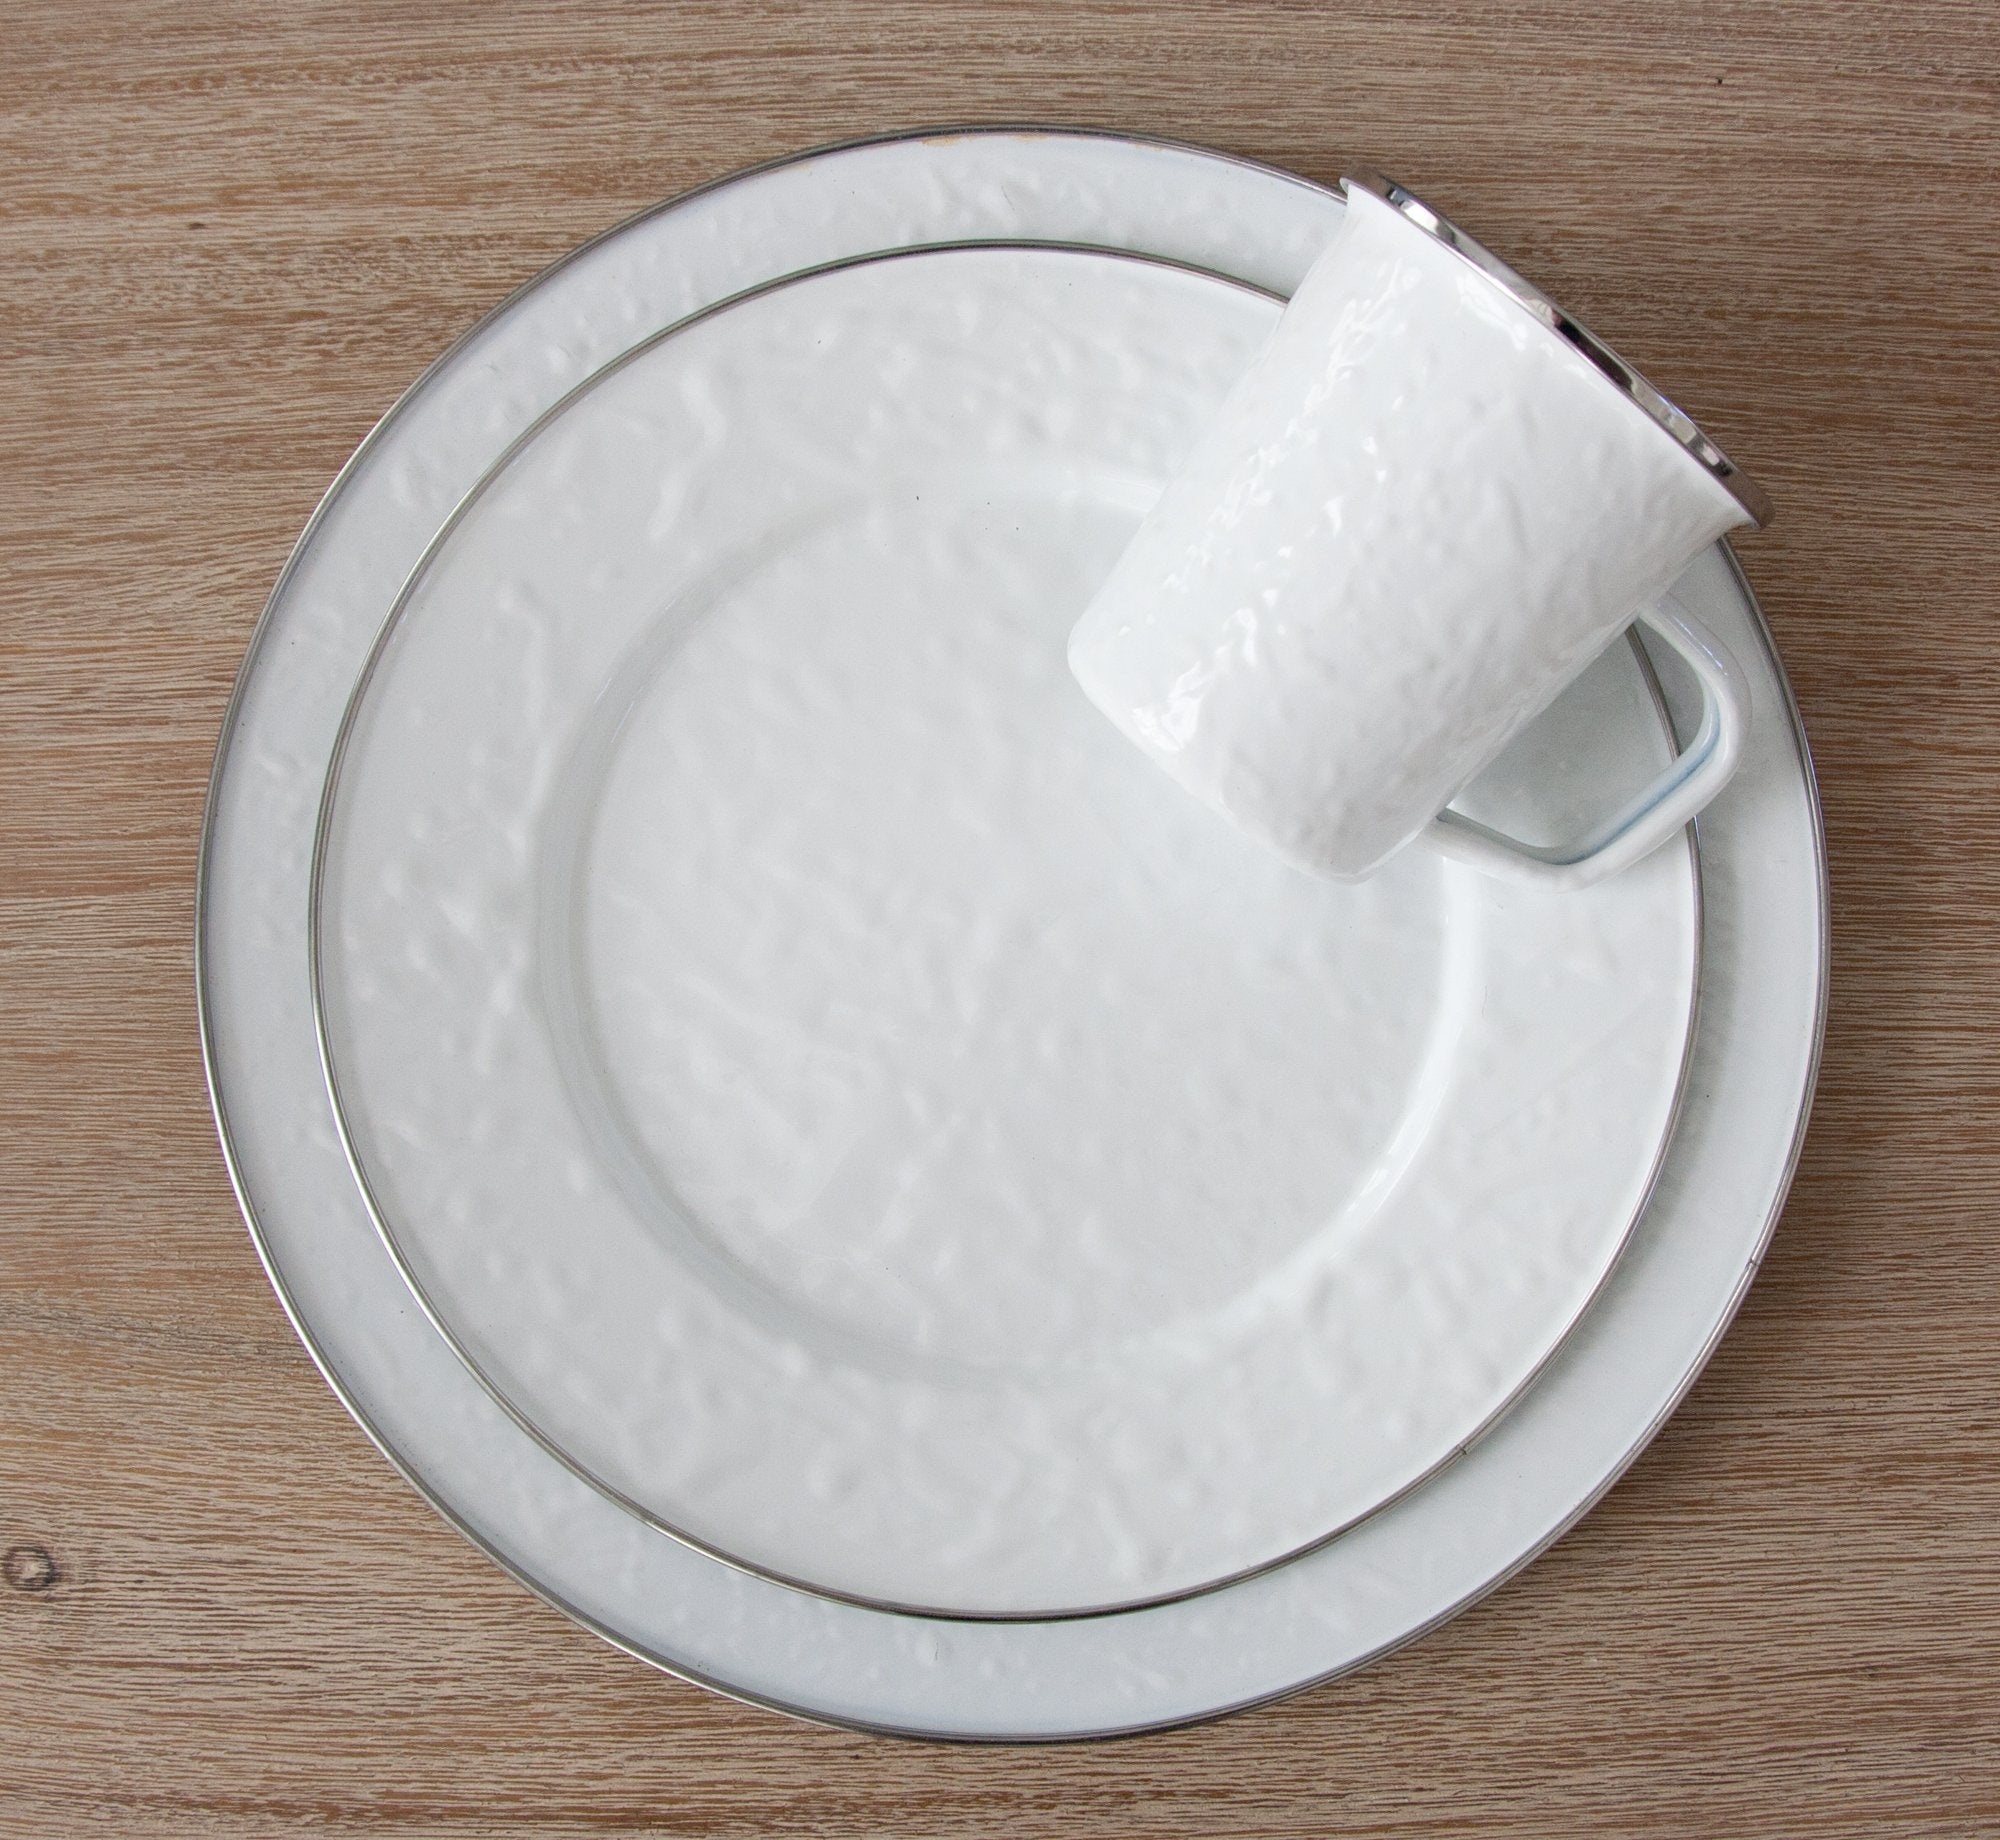 WW06 - Solid White Oval Platter Lifestyle 1